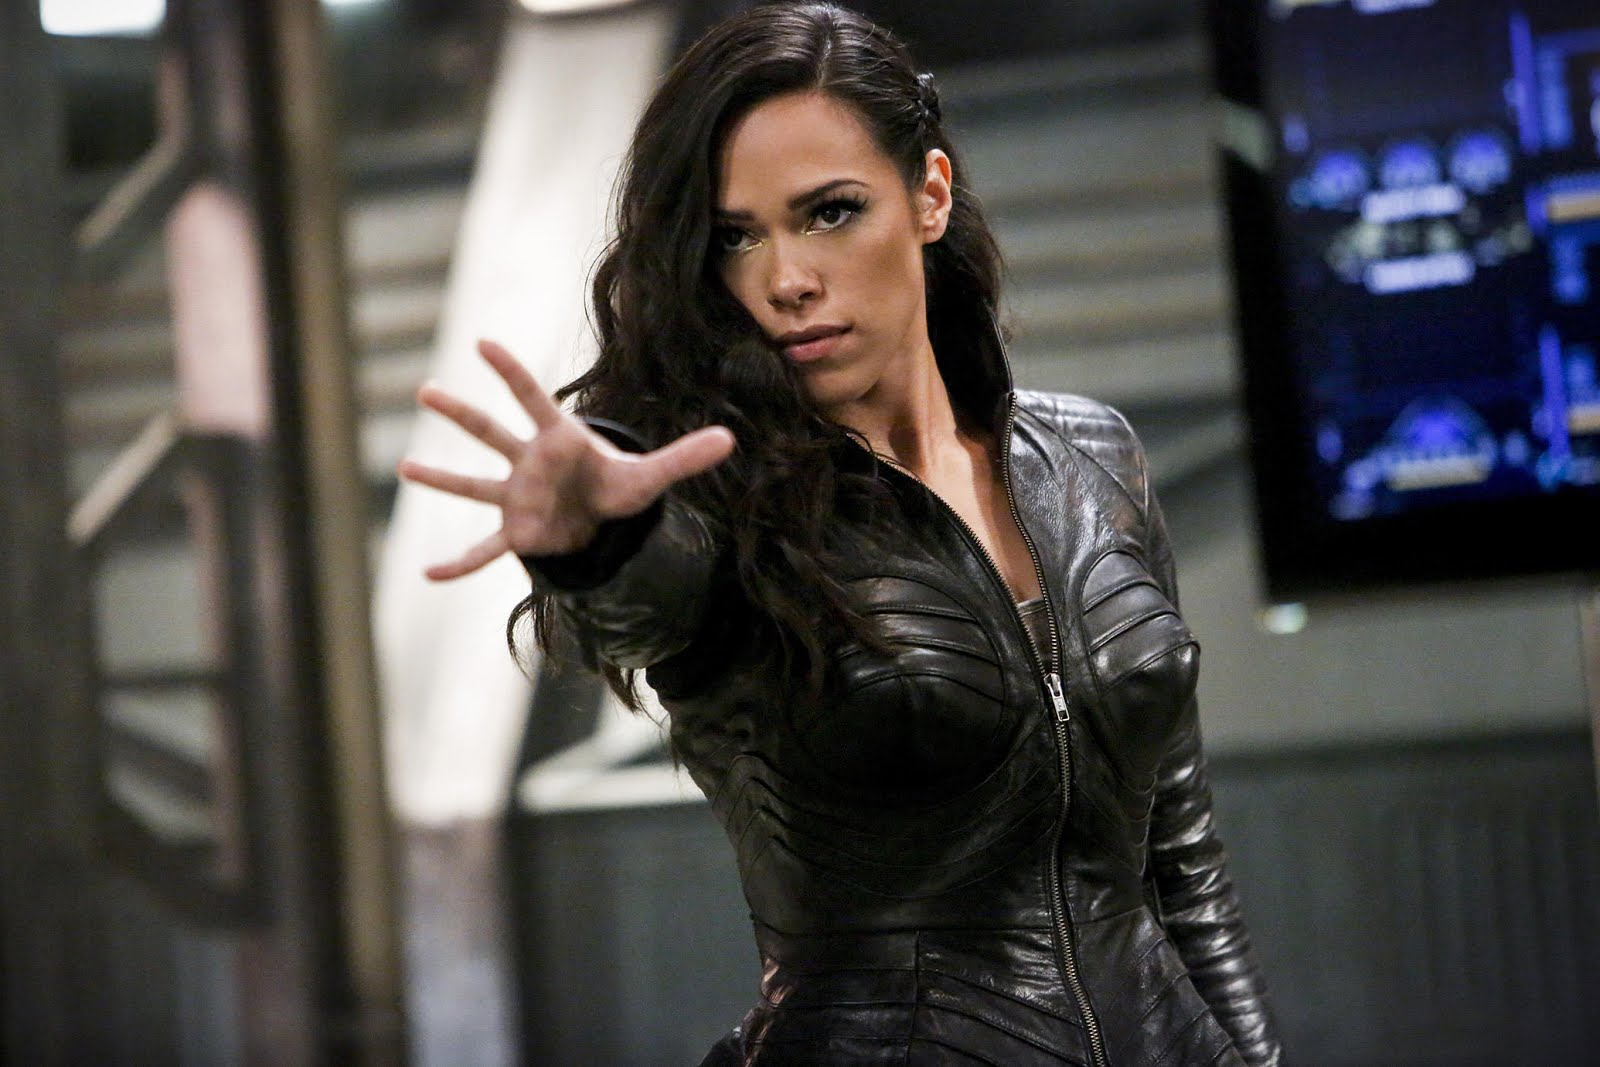 THE FLASH: Season Four - As if meeting your girlfriend's father for the first time isn't stressful